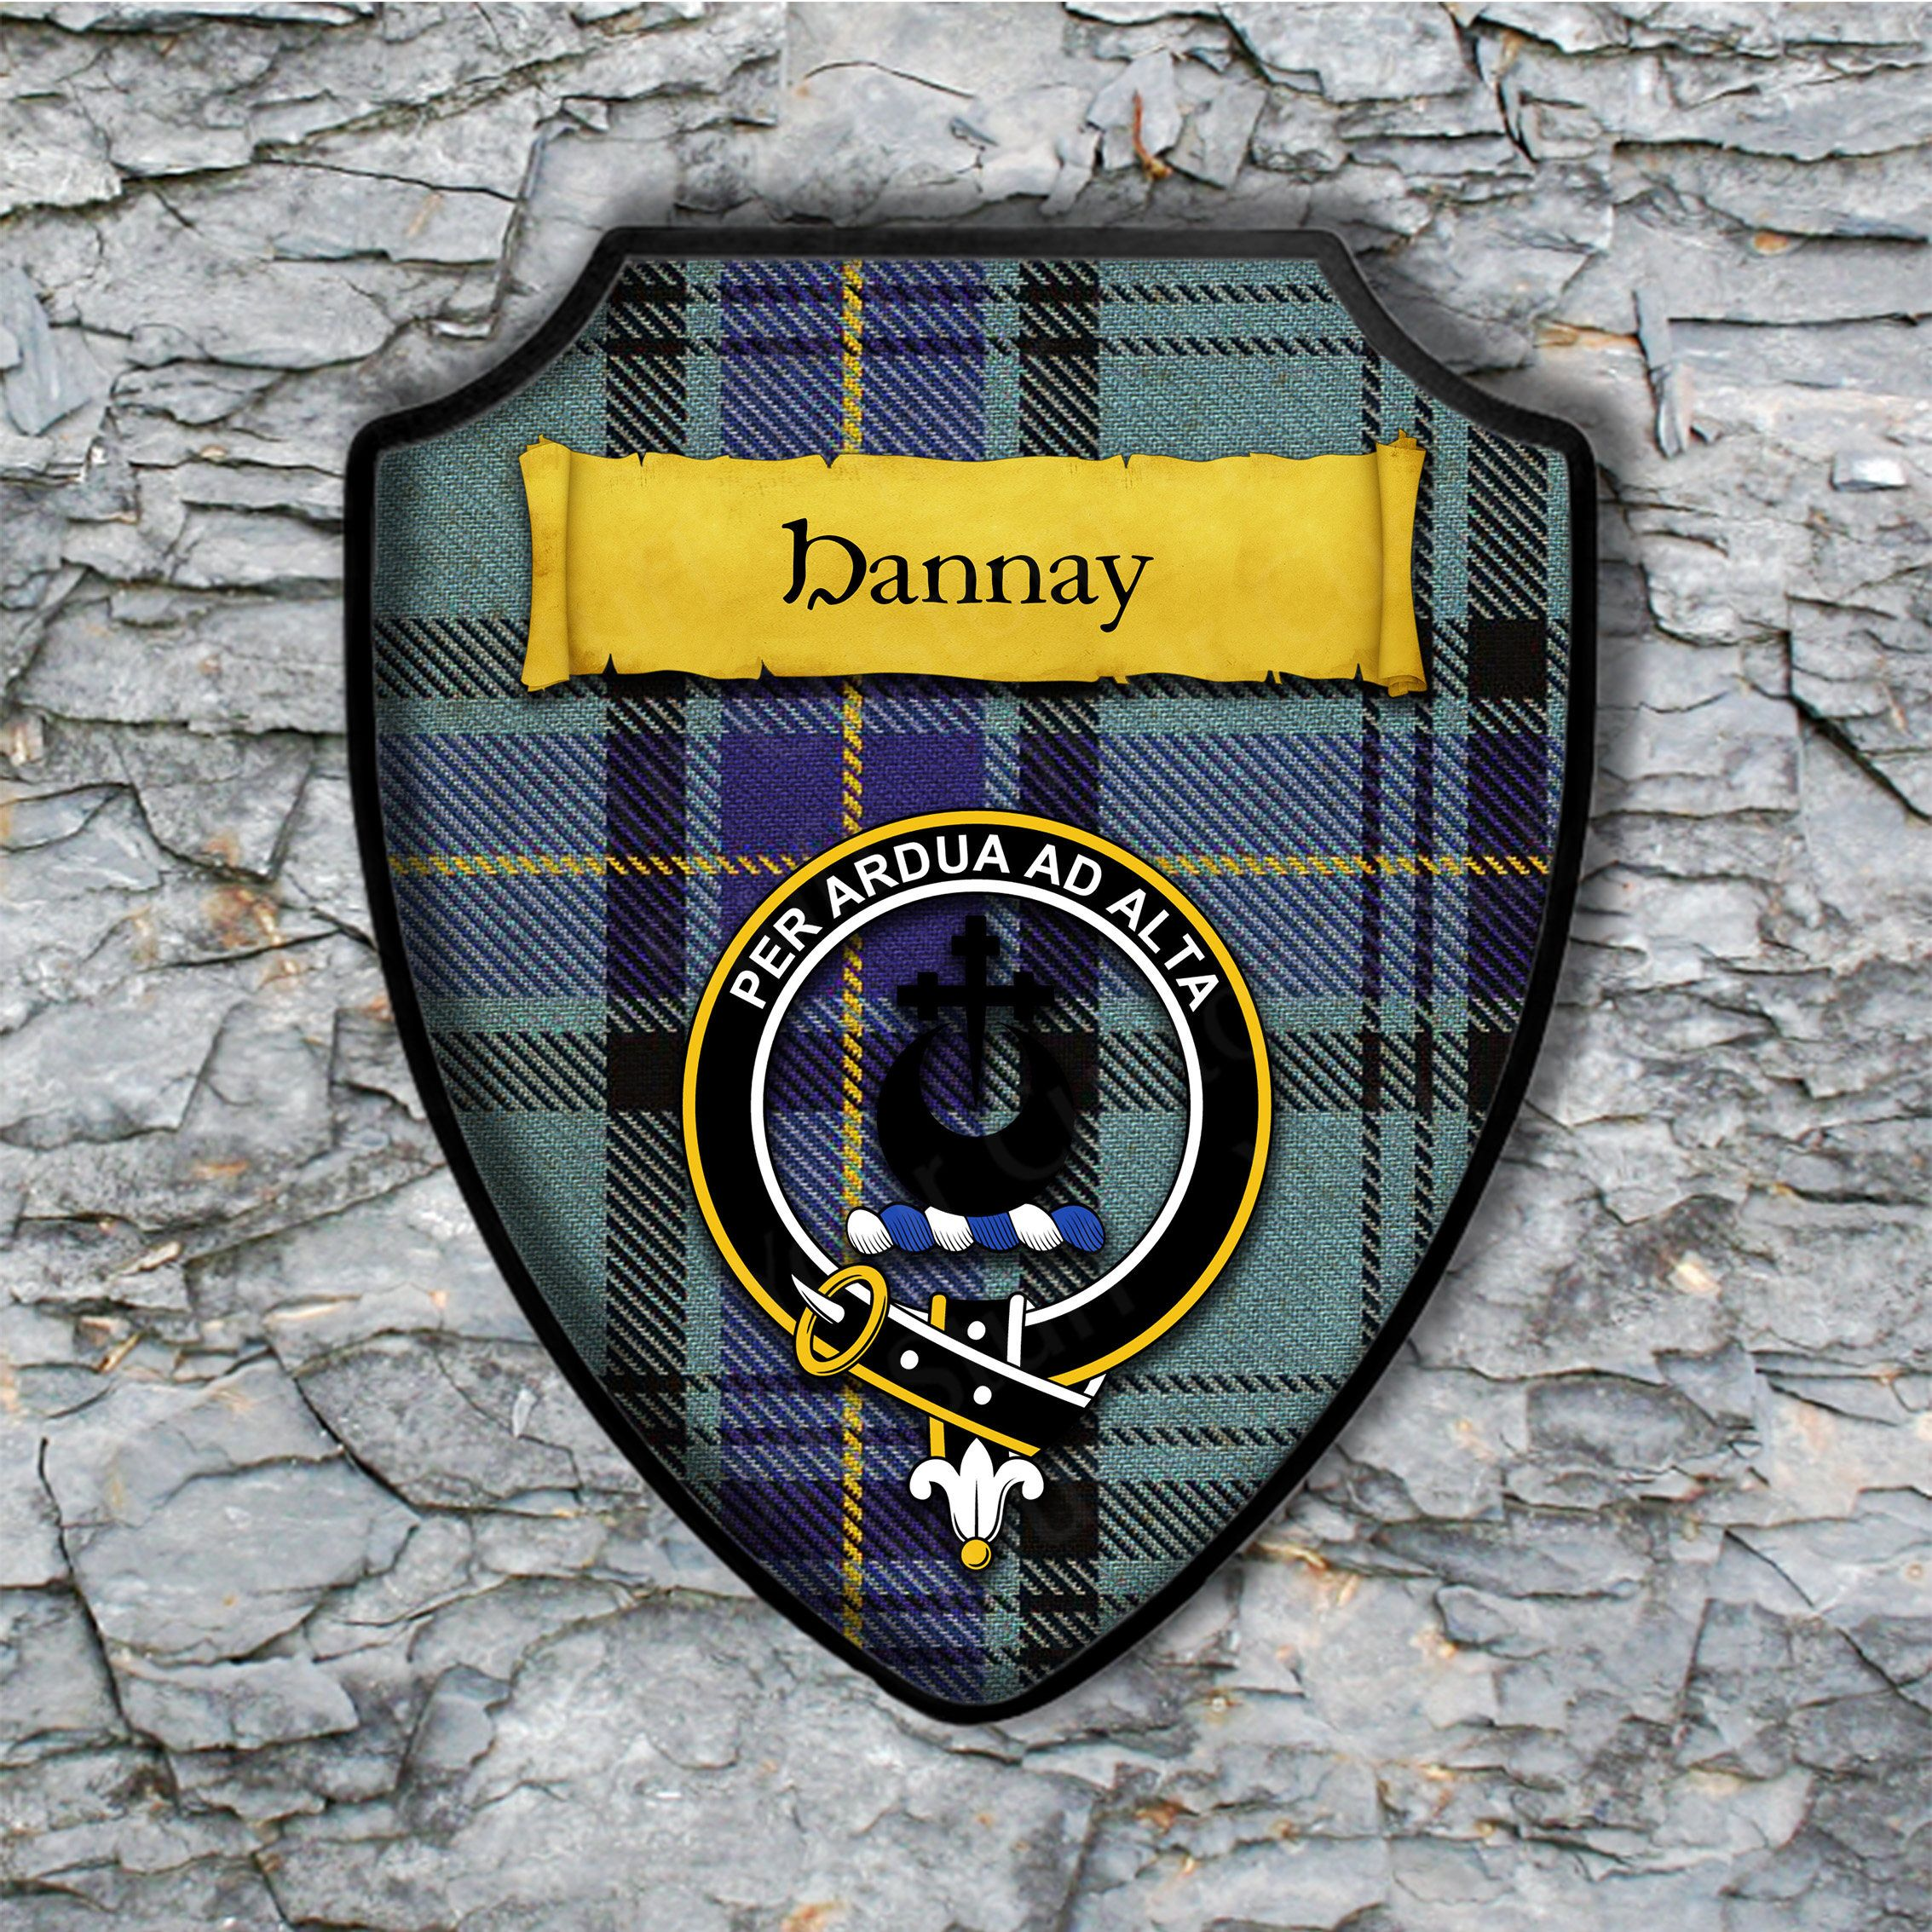 Hannay Plaque with Scottish Clan Badge on Clan Tartan Background by YourCustomStuff on Etsy https://www.etsy.com/listing/514878078/hannay-plaque-with-scottish-clan-badge